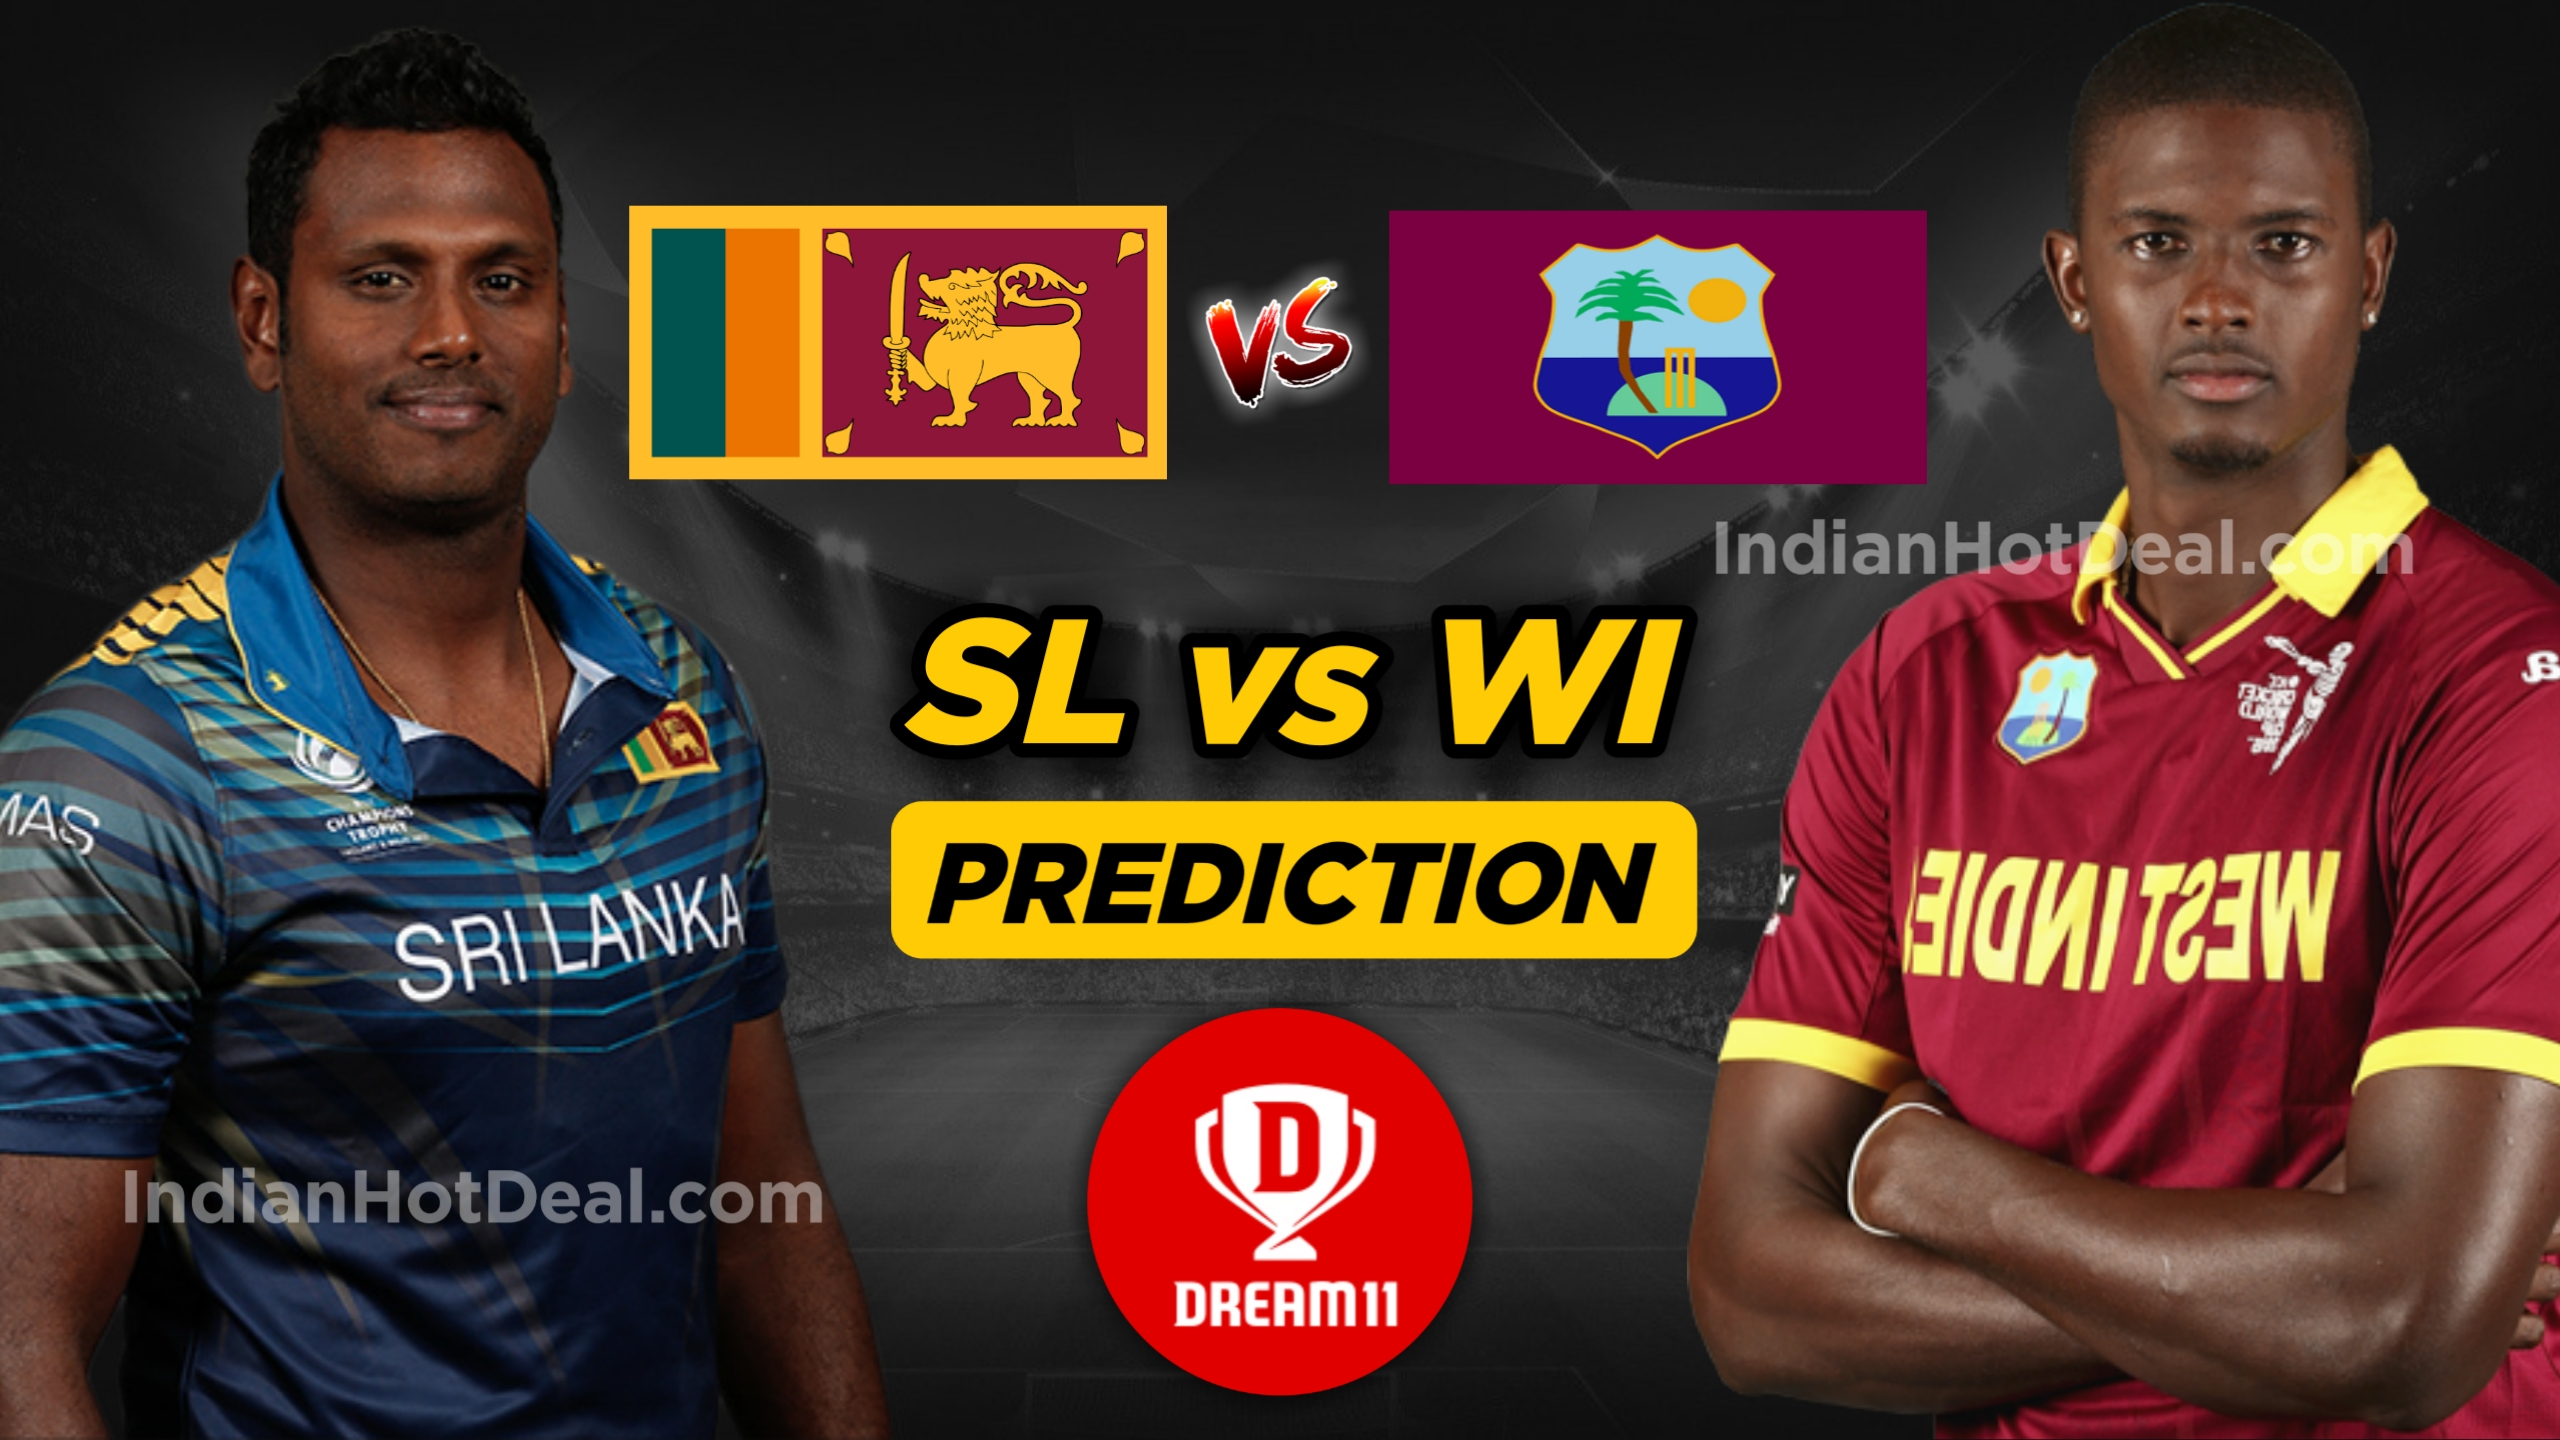 WI vs SL 2nd ODI Dream11 Team Prediction for Today's Match